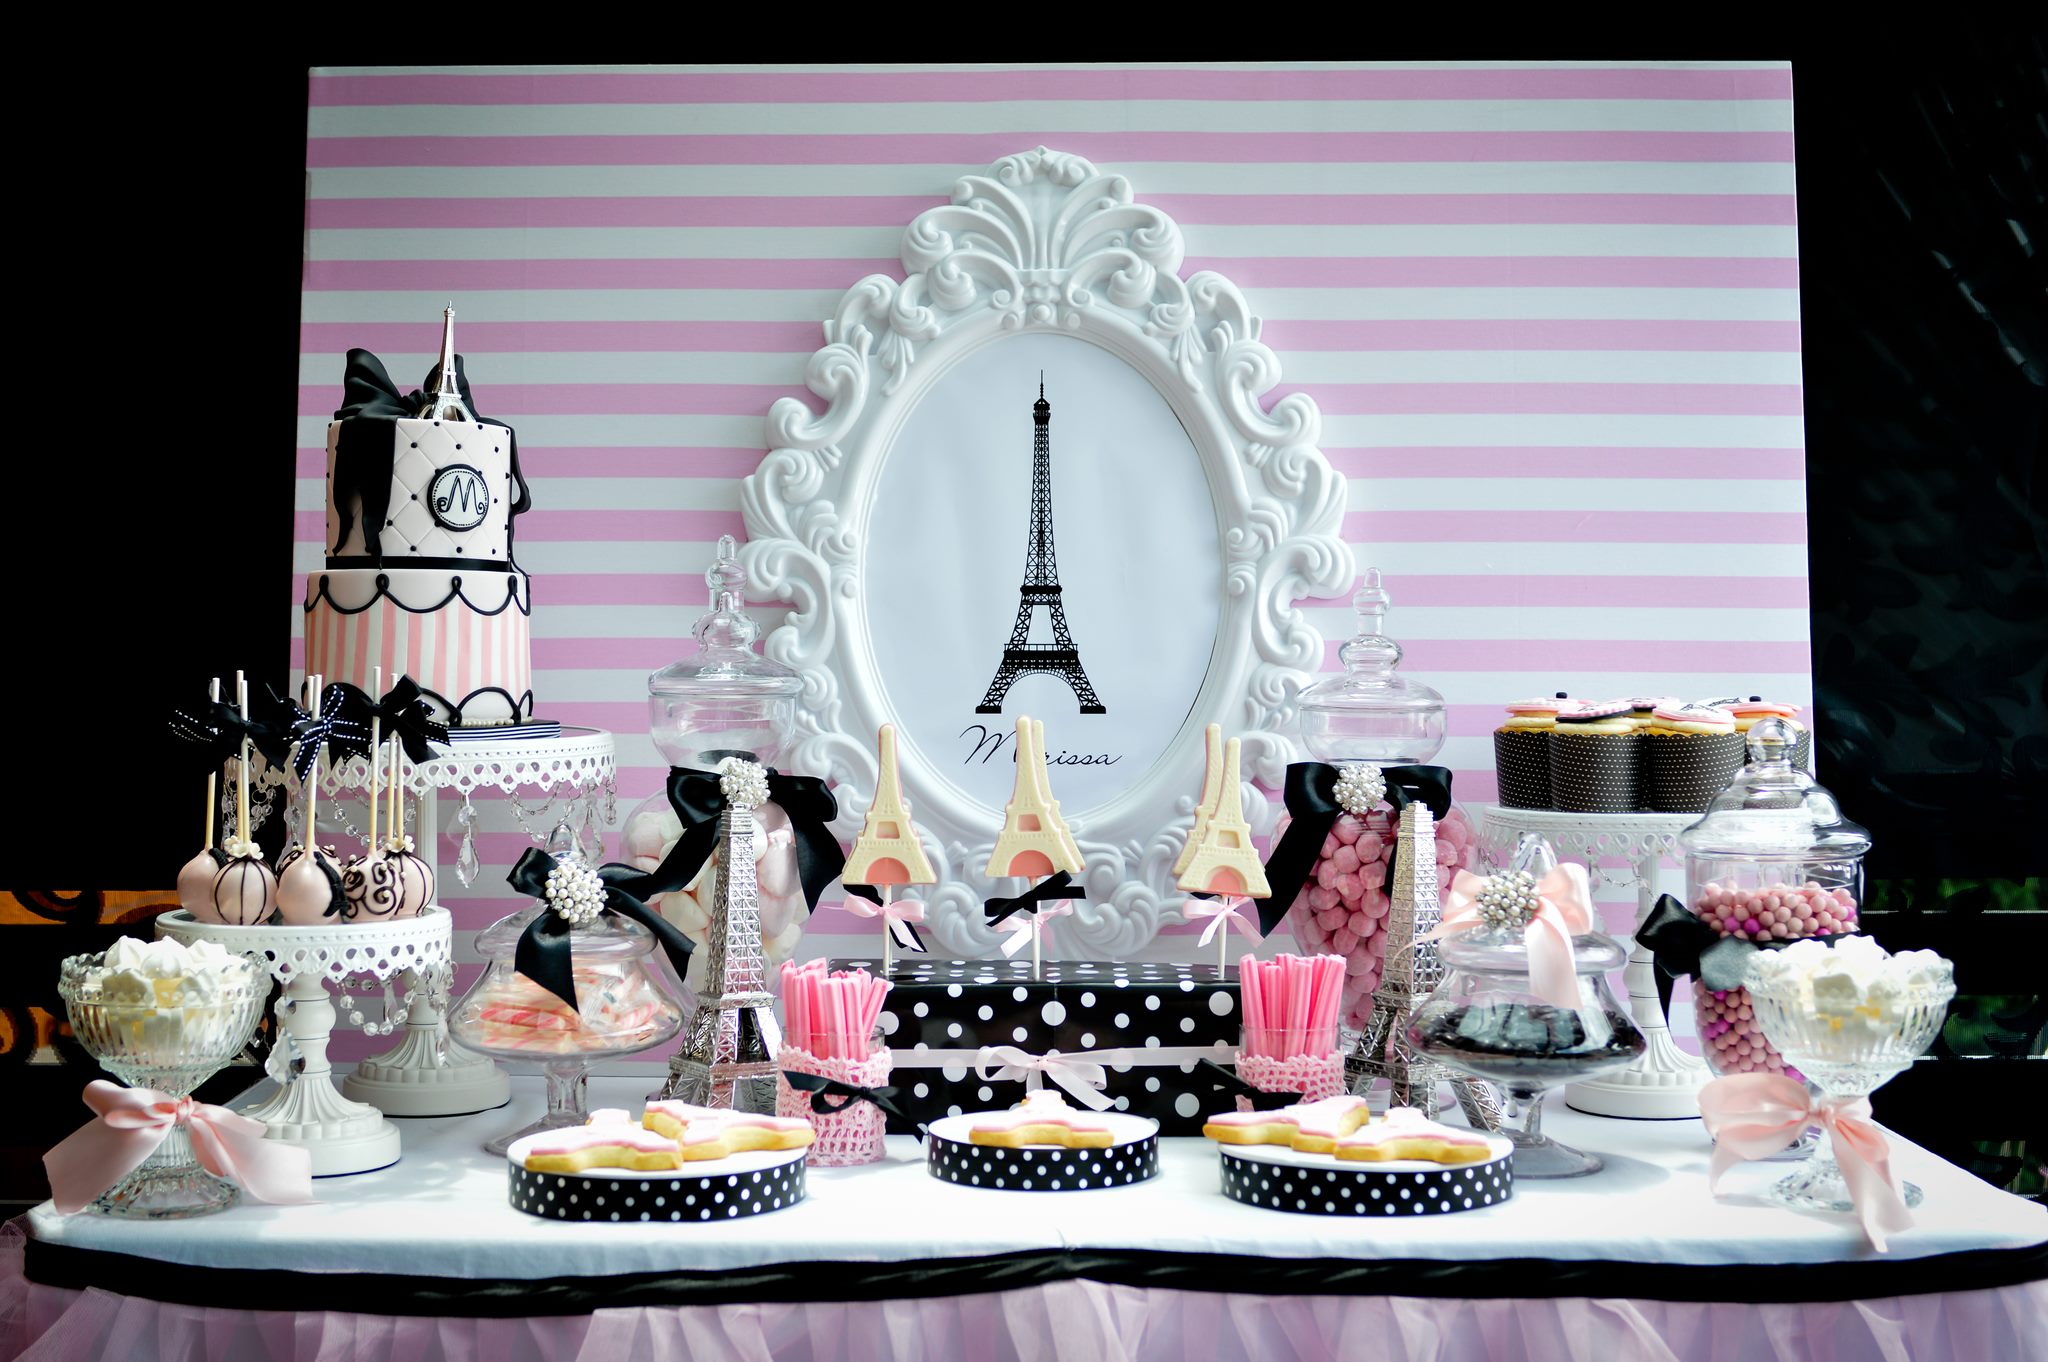 Paris pamper party - Sweet Bambini Event Styling